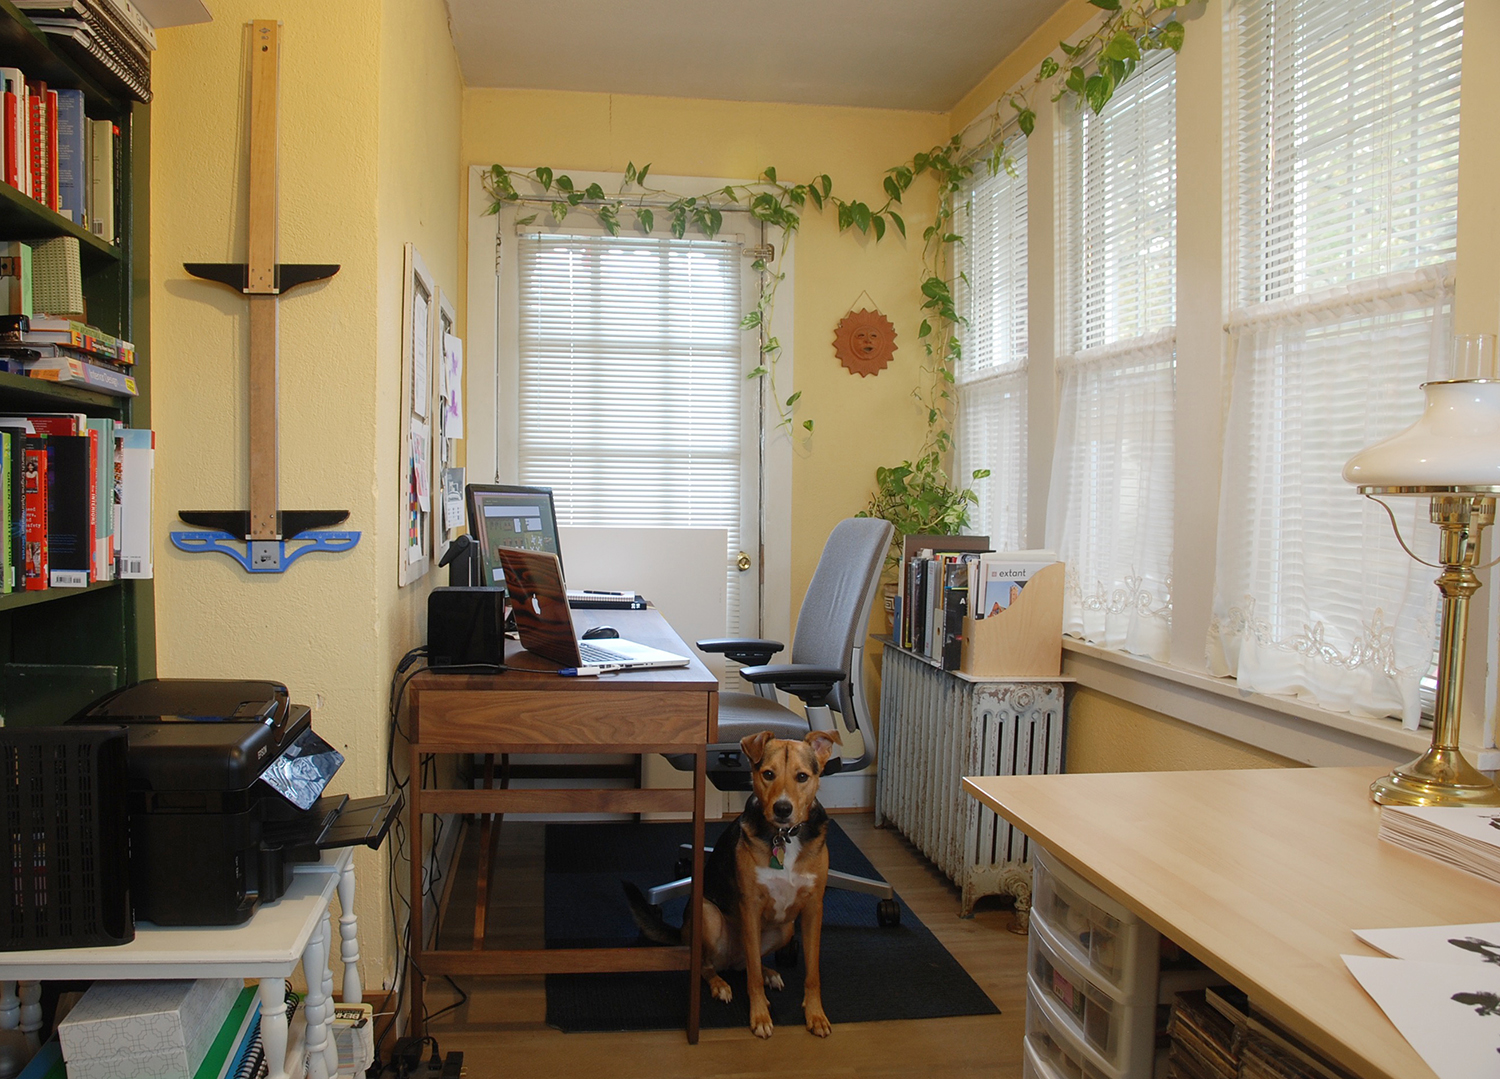 Yup, that's my studio dog in the photograph (but she usually sleeps on the job)